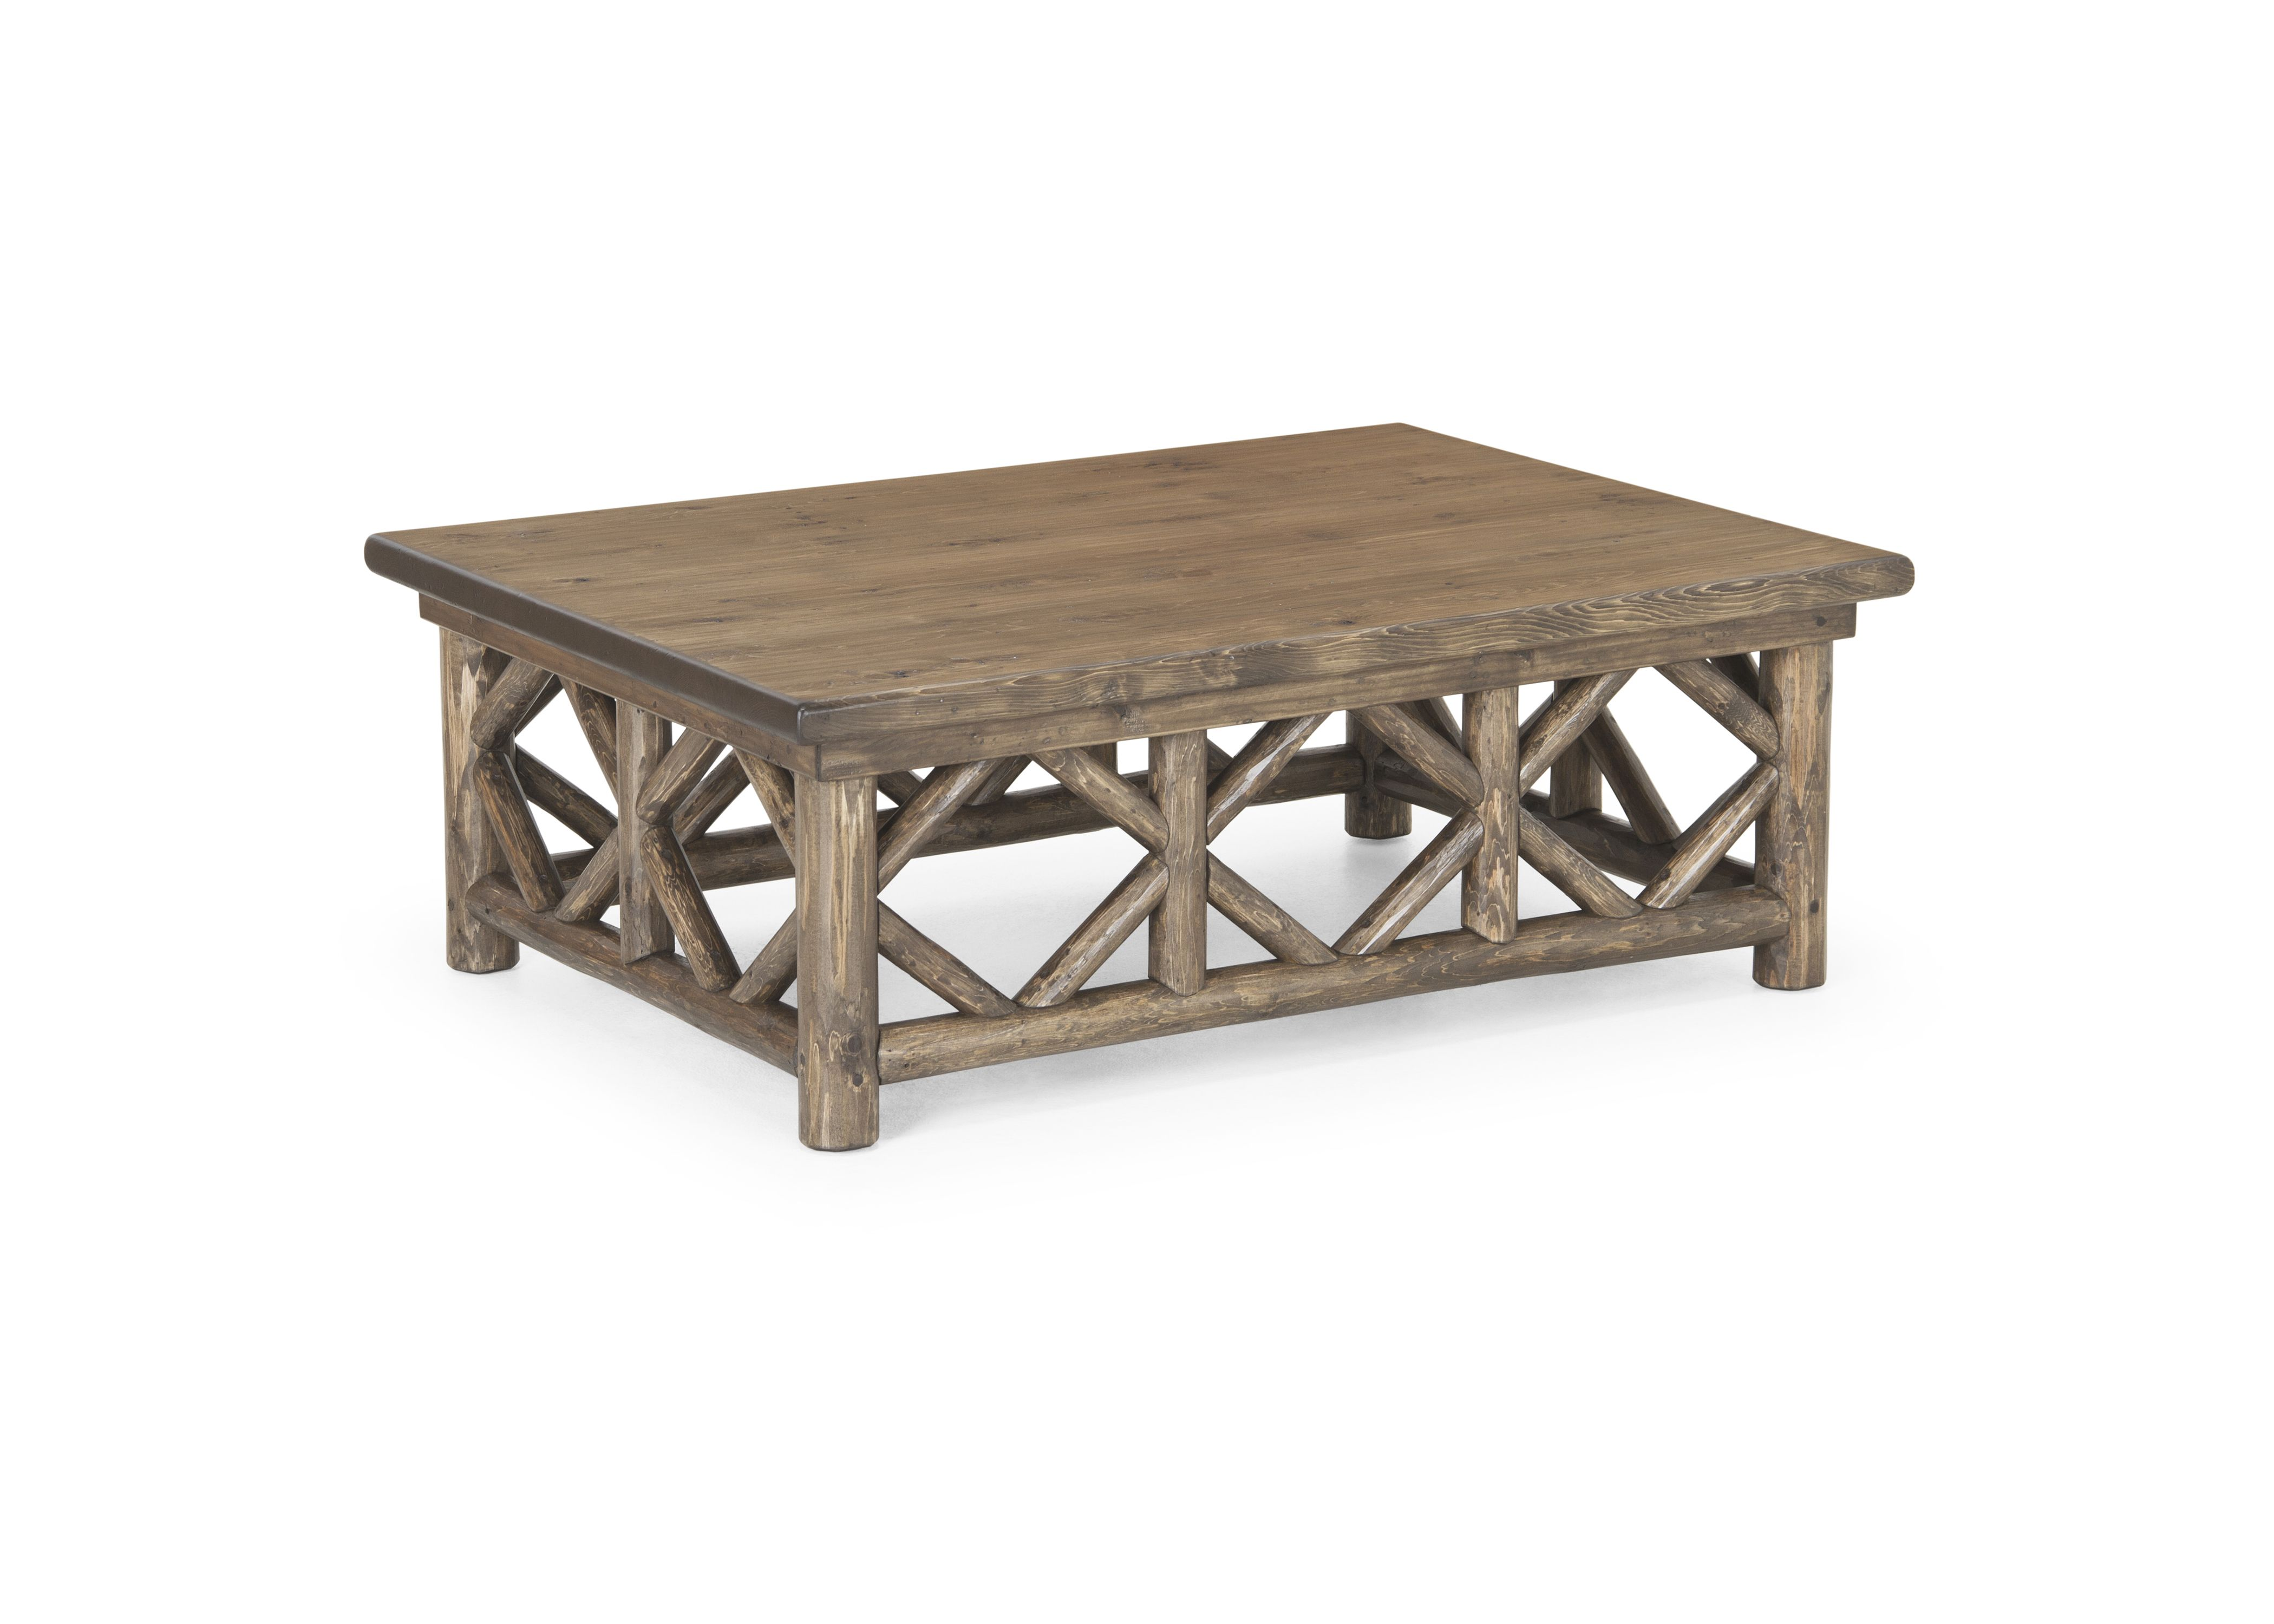 Rustic Coffee Table 3233 By La Lune Collection Rustic Coffee Tables Coffee Table Rustic Table [ 3000 x 4200 Pixel ]